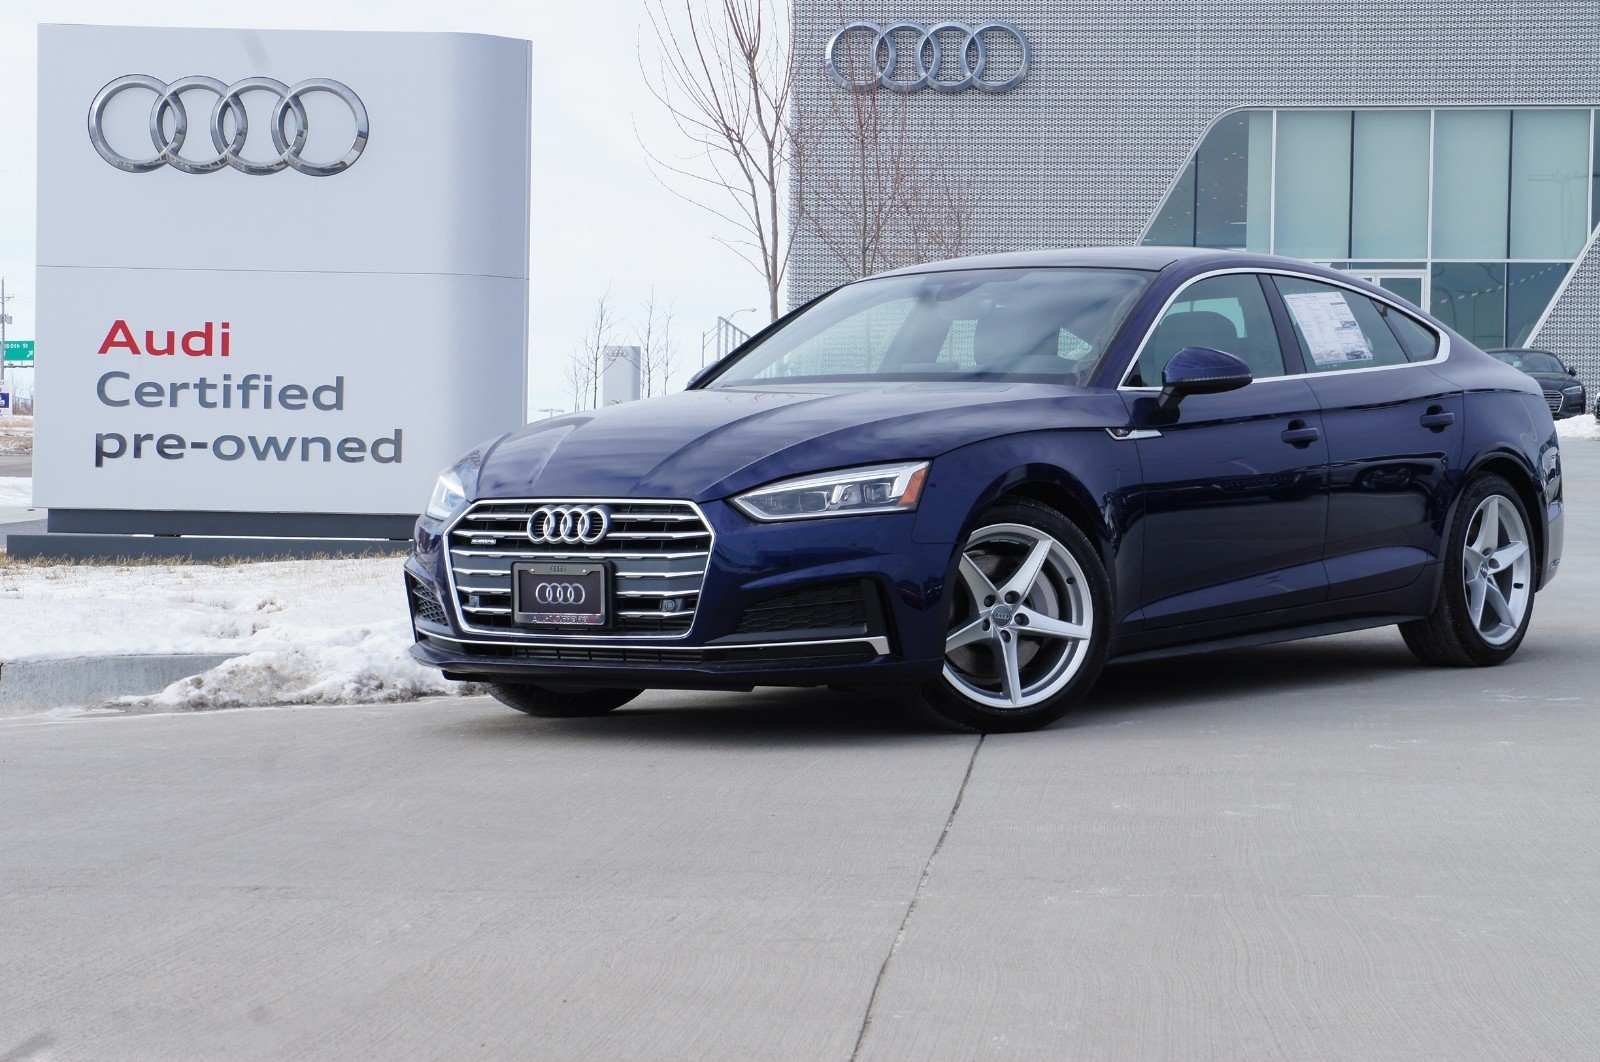 68 All New 2019 Audi A5 Price And Review